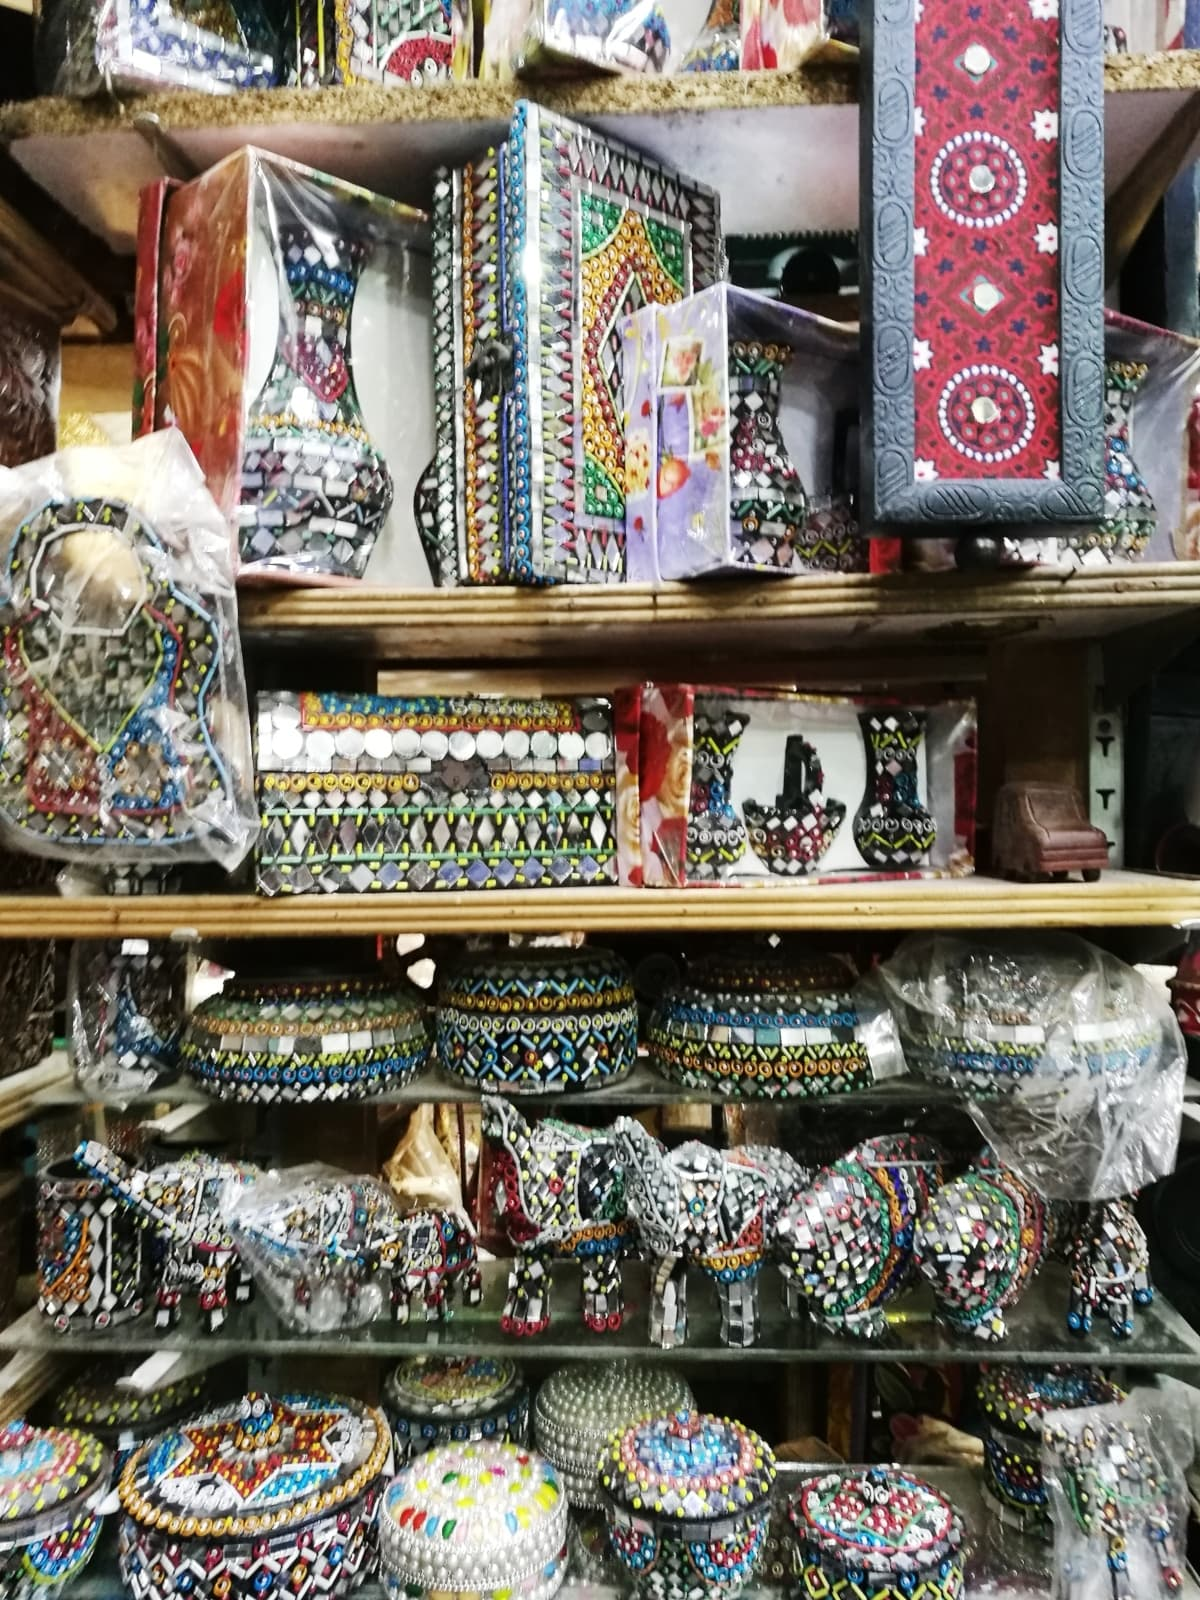 Tiny little shops containing locally produced souvenir-type items such as these are fairly easily found around old town